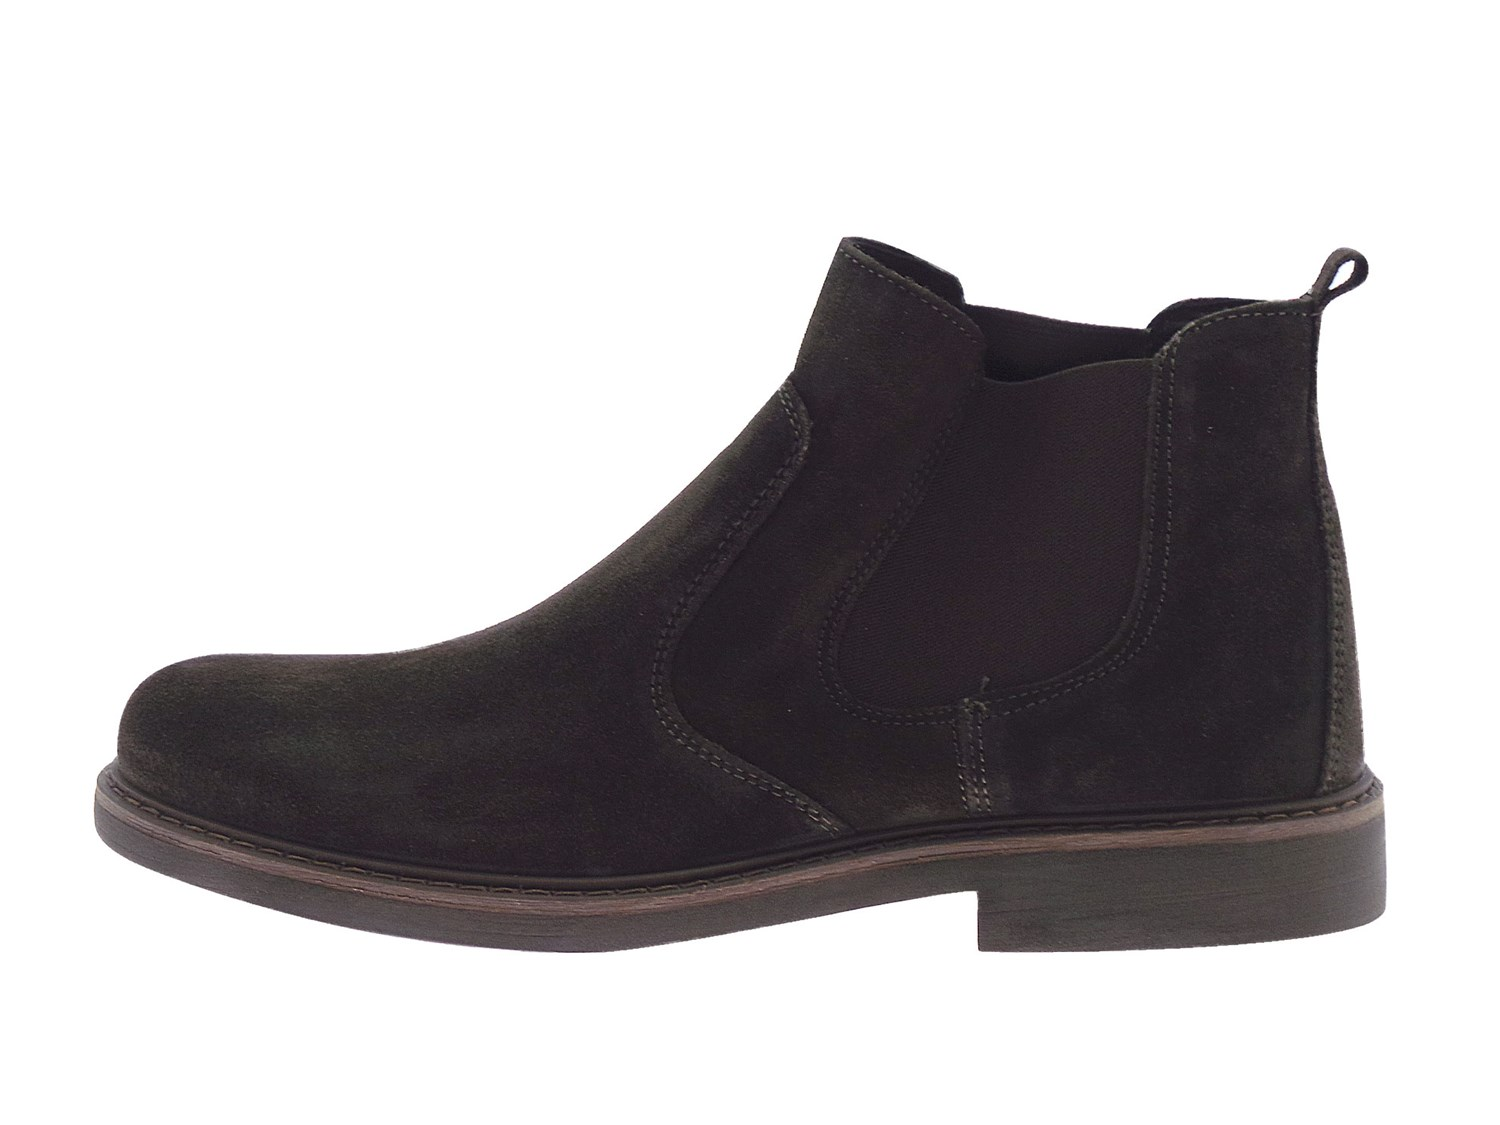 Igi&co 6660600 Coffee' Shoes Man Boots